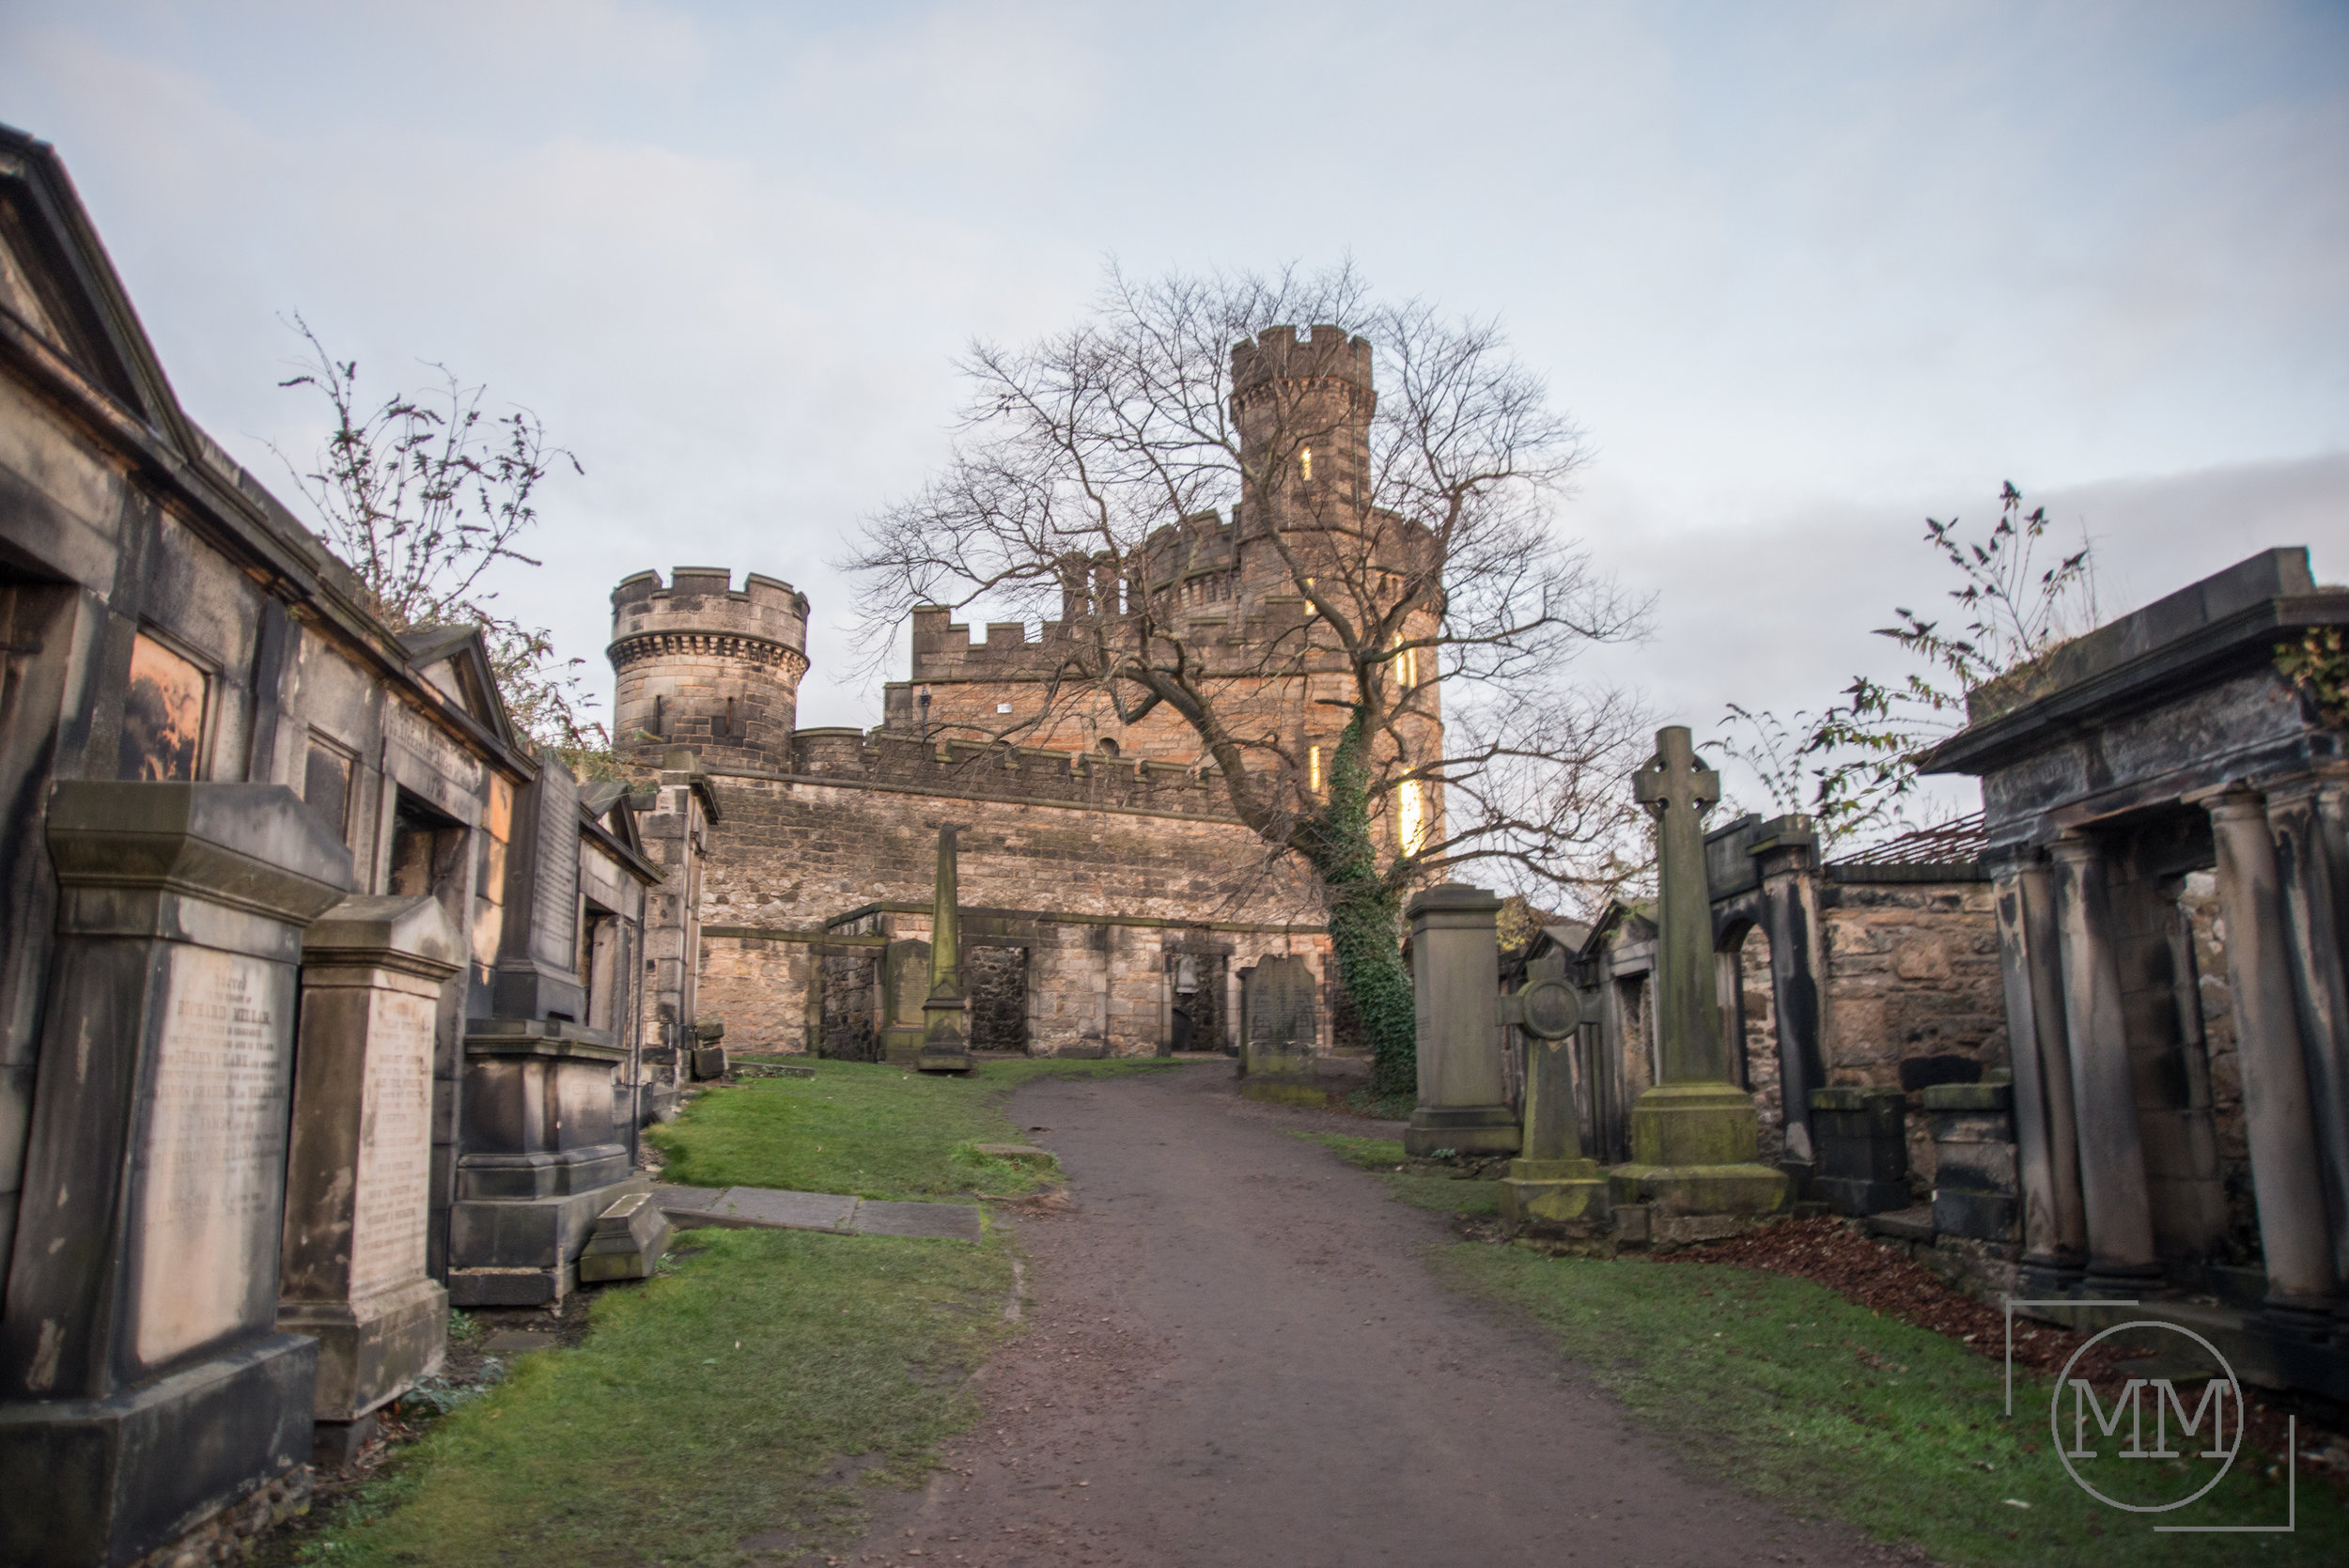 One more stop before town centre was this cool looking graveyard.